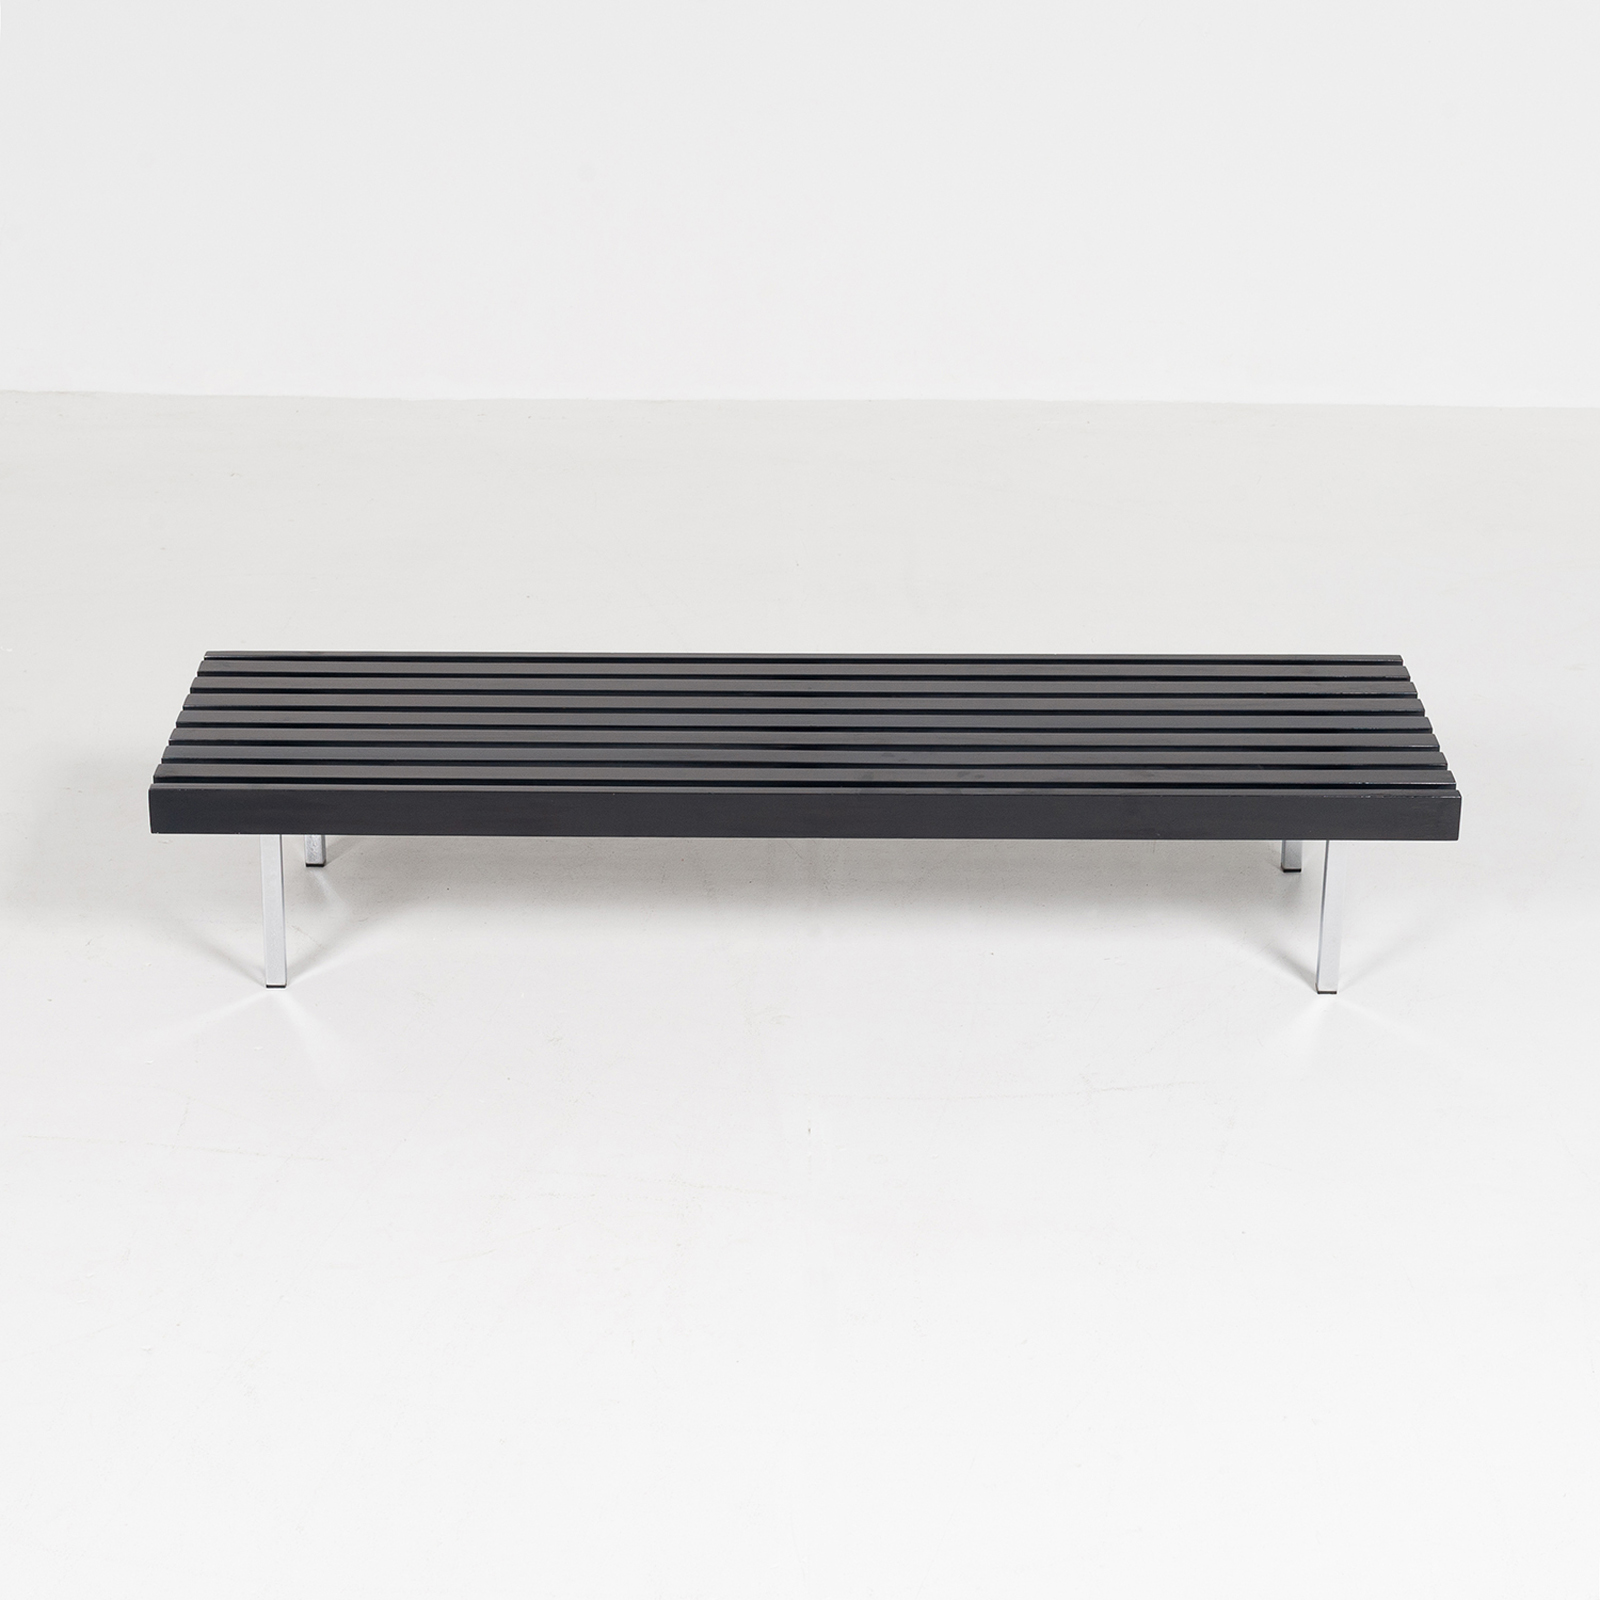 Slatted Bench By 't Spectrum, 1960s, The Netherlands3